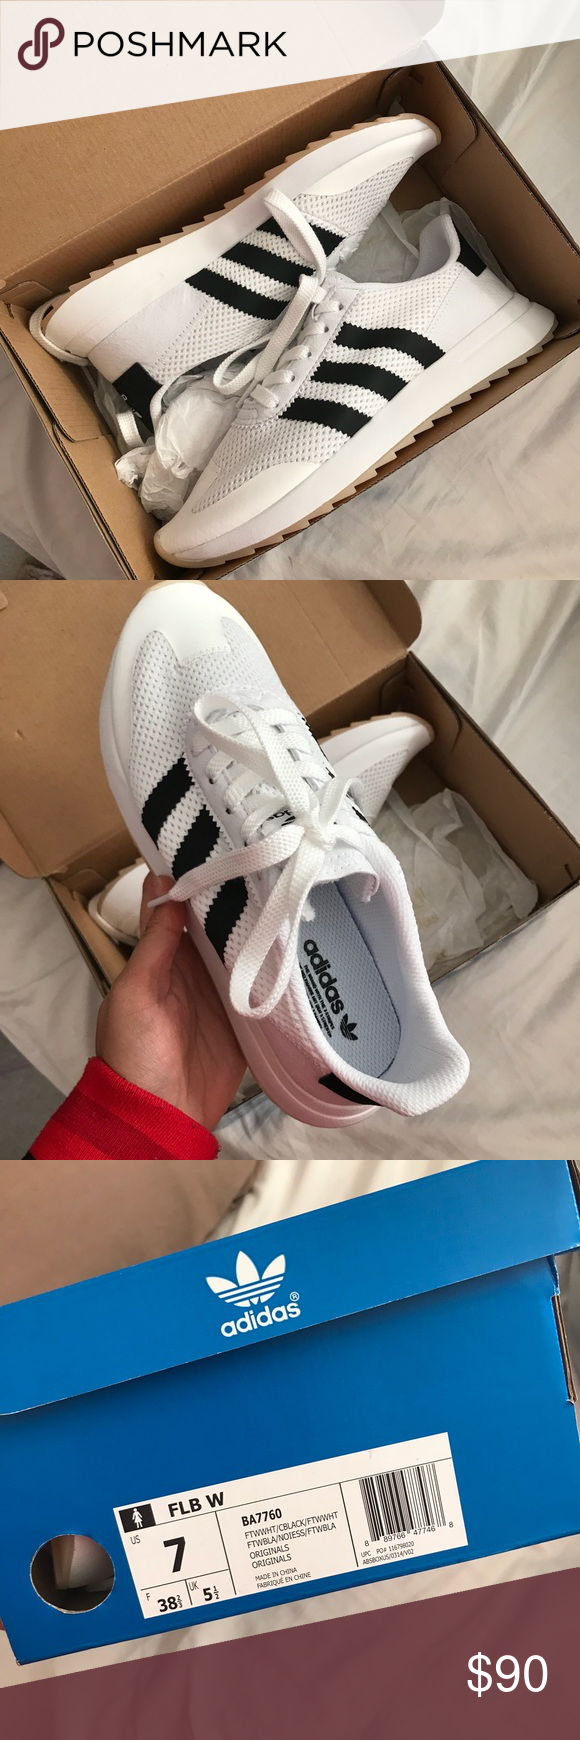 adidas superstar flb scarpe nwt pinterest adidas superstar